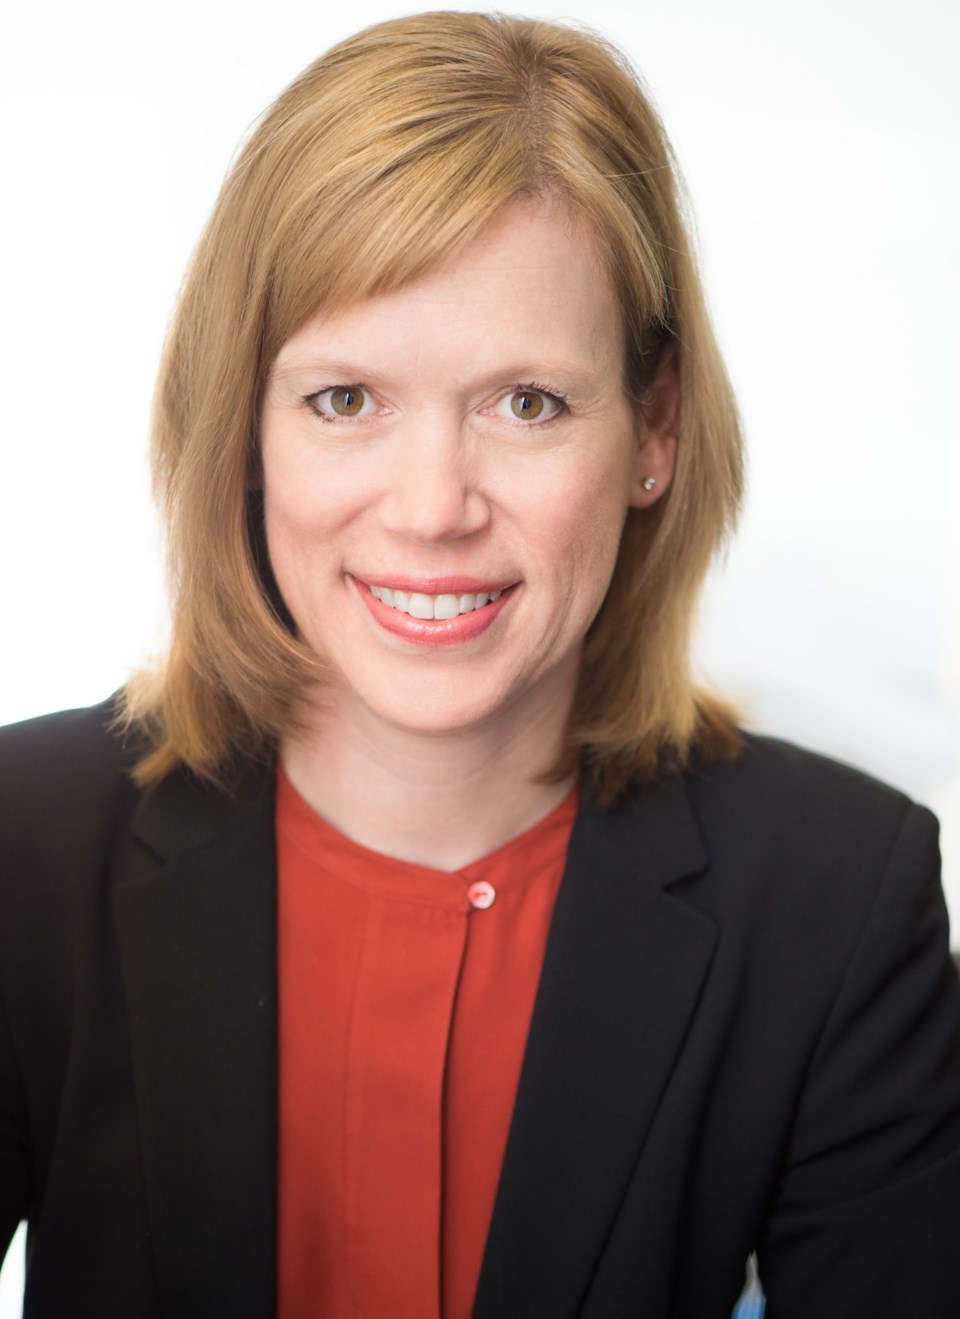 Lori Mathison, president and CEO of the Chartered Professional Accountants of B.C.